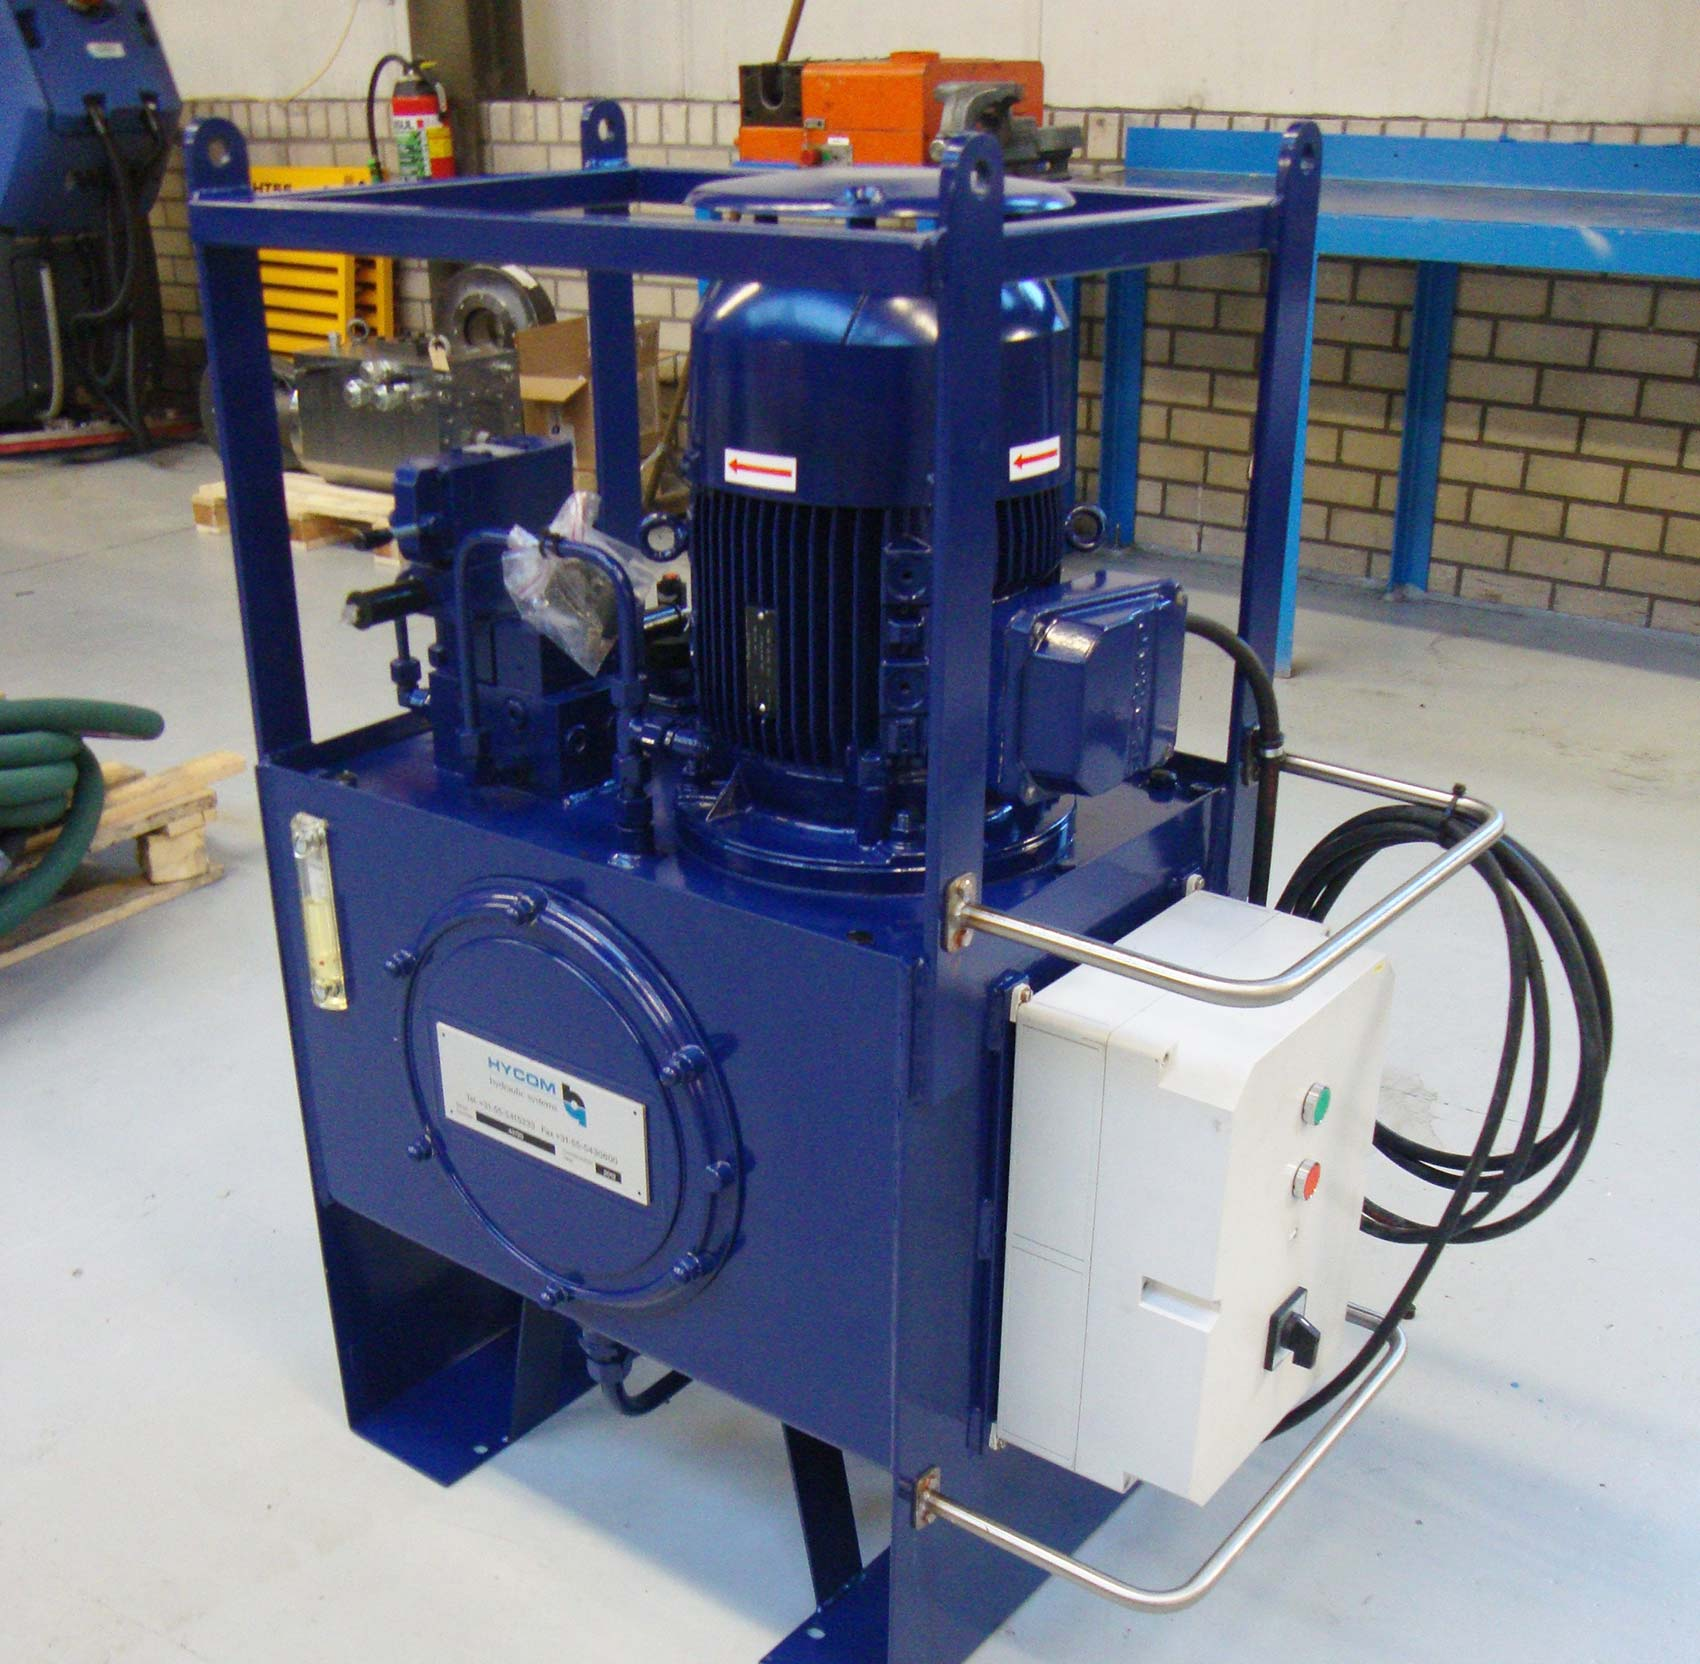 Hydraulic power unit for use on a press